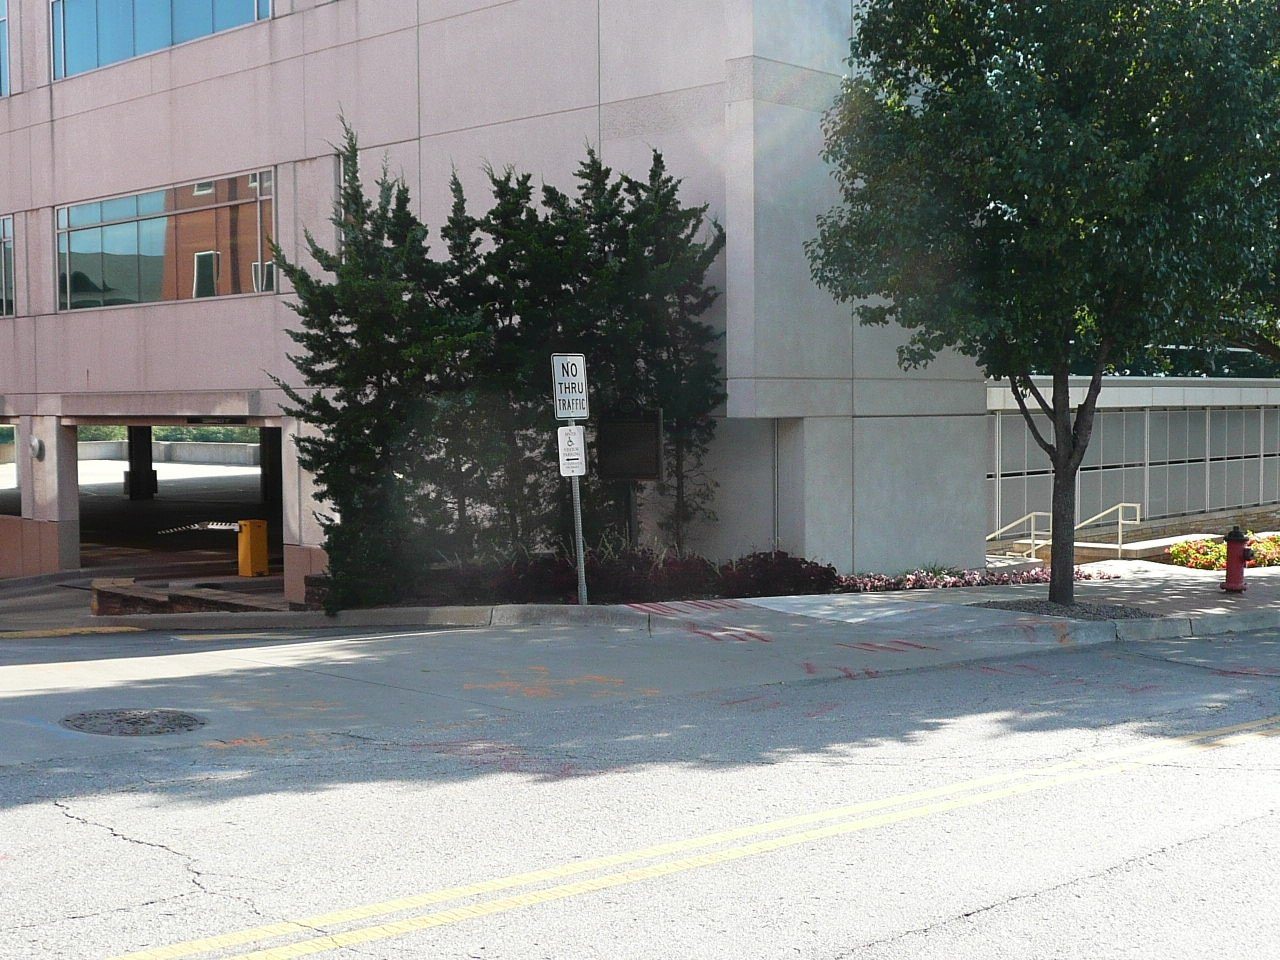 The marker is located beside a parking garage, near the original site of the cemetery. Image obtained from the Historical Marker Database.